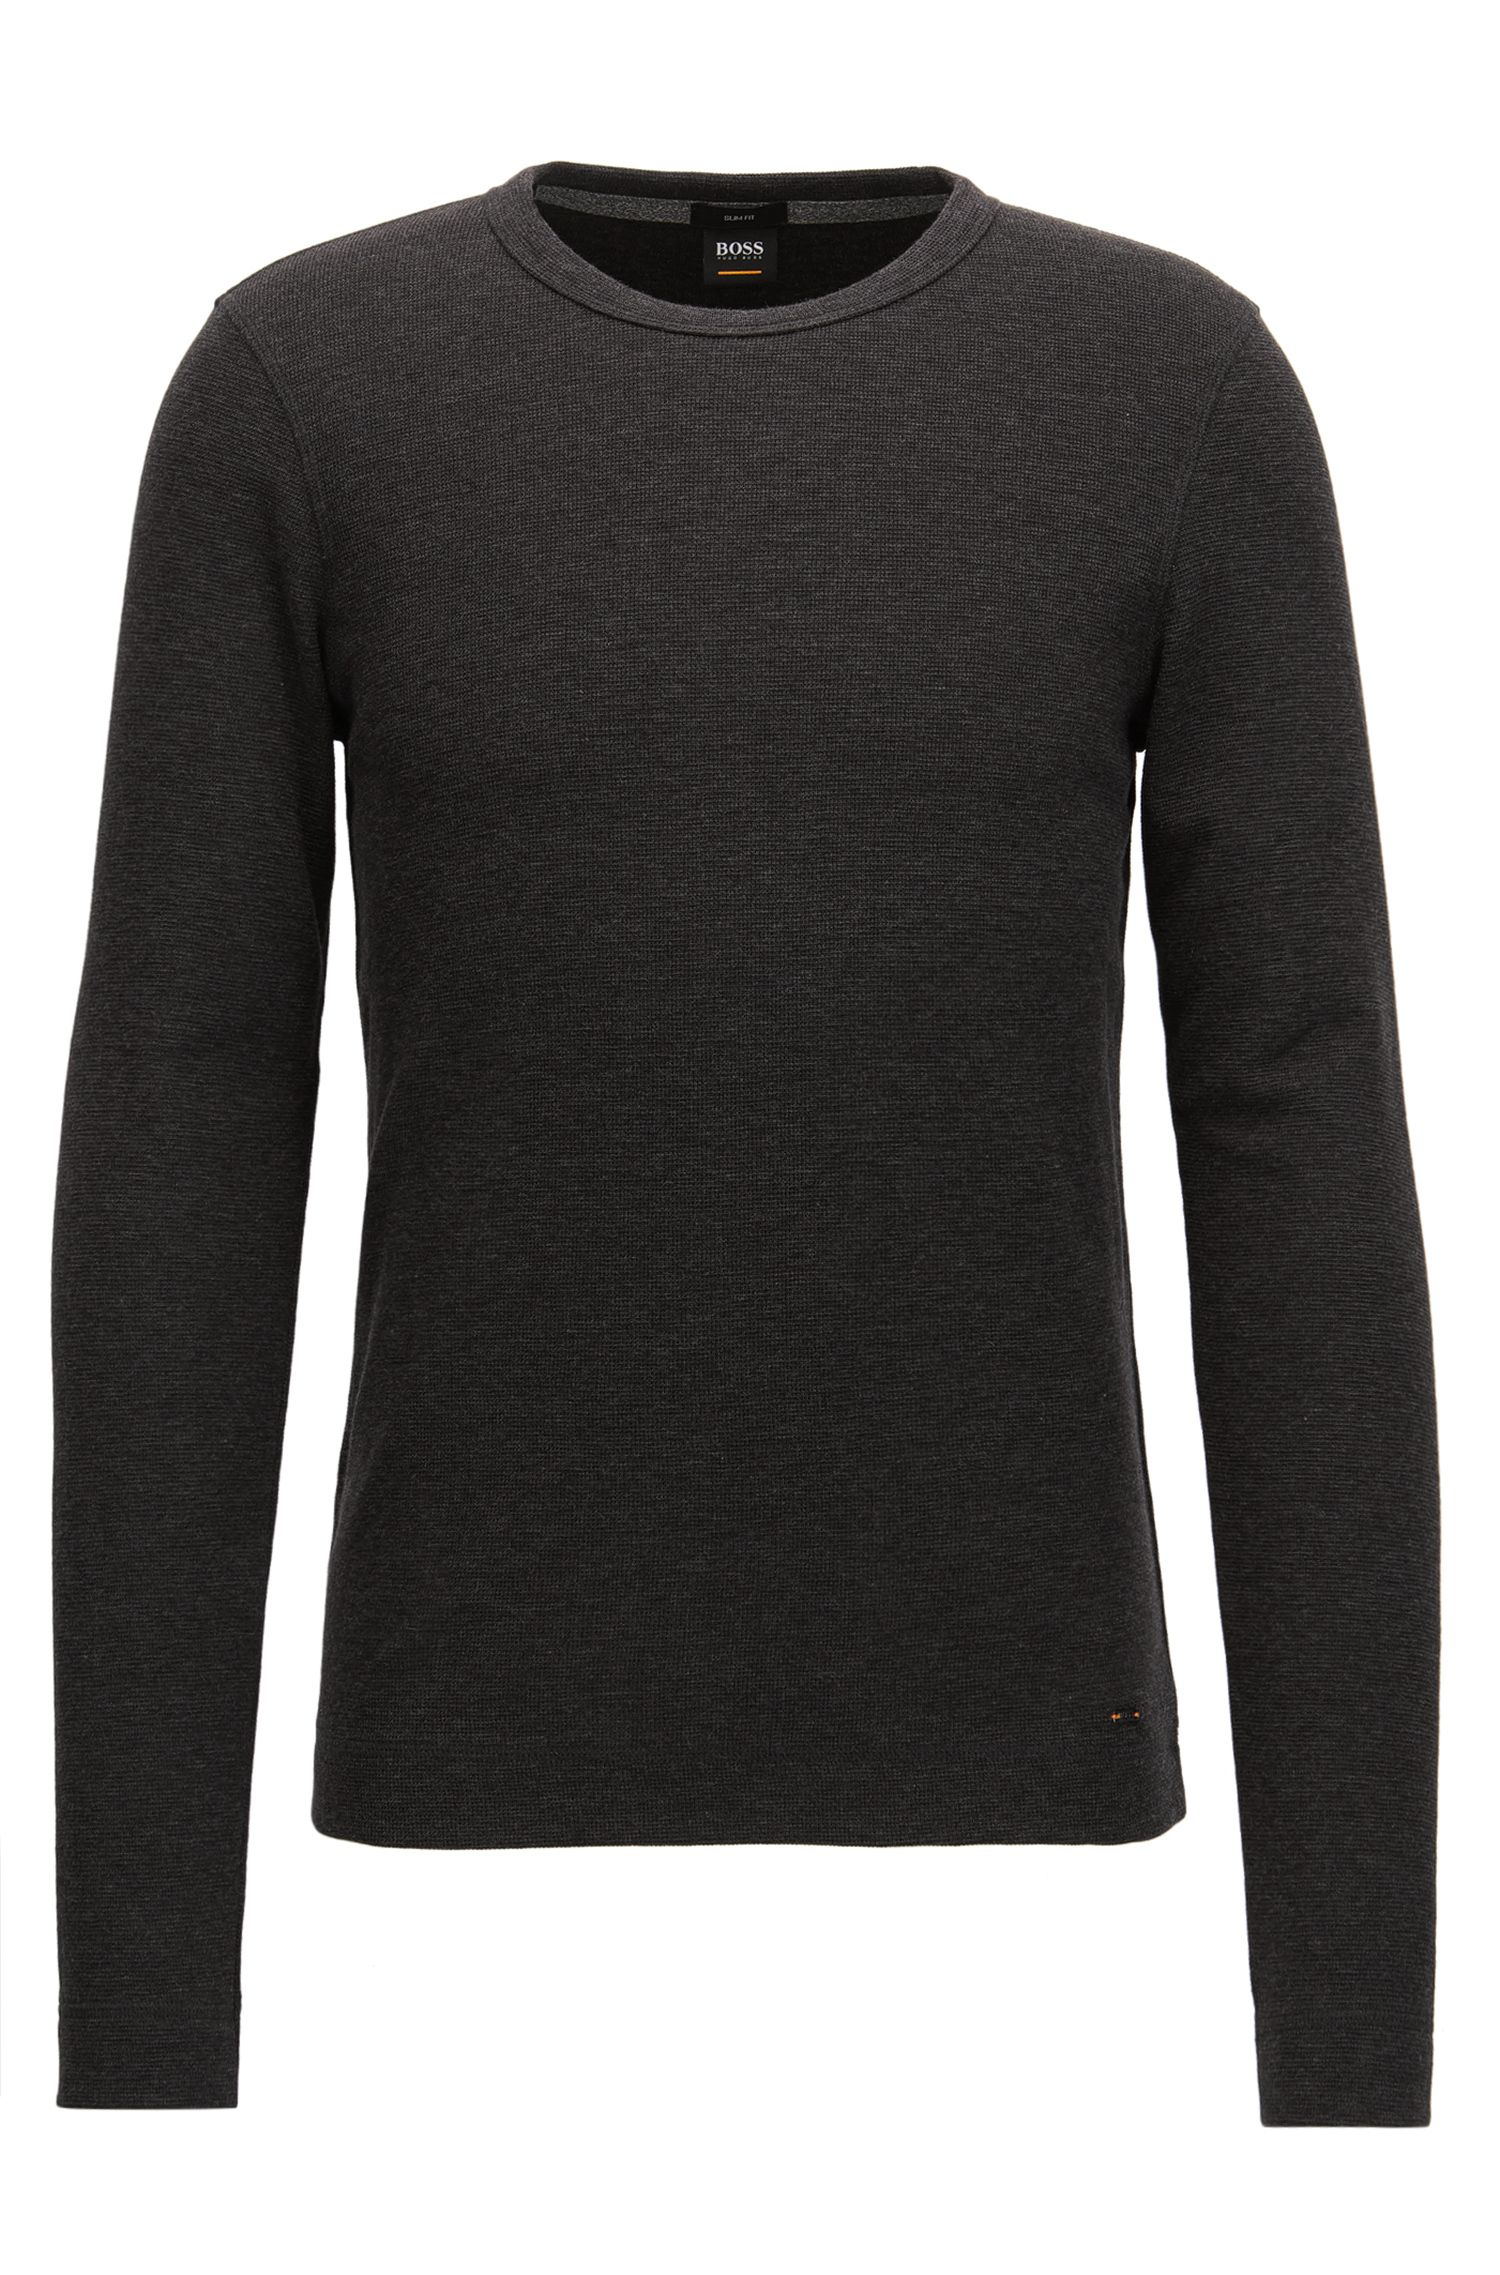 Slim-fit long-sleeved T-shirt in heathered cotton